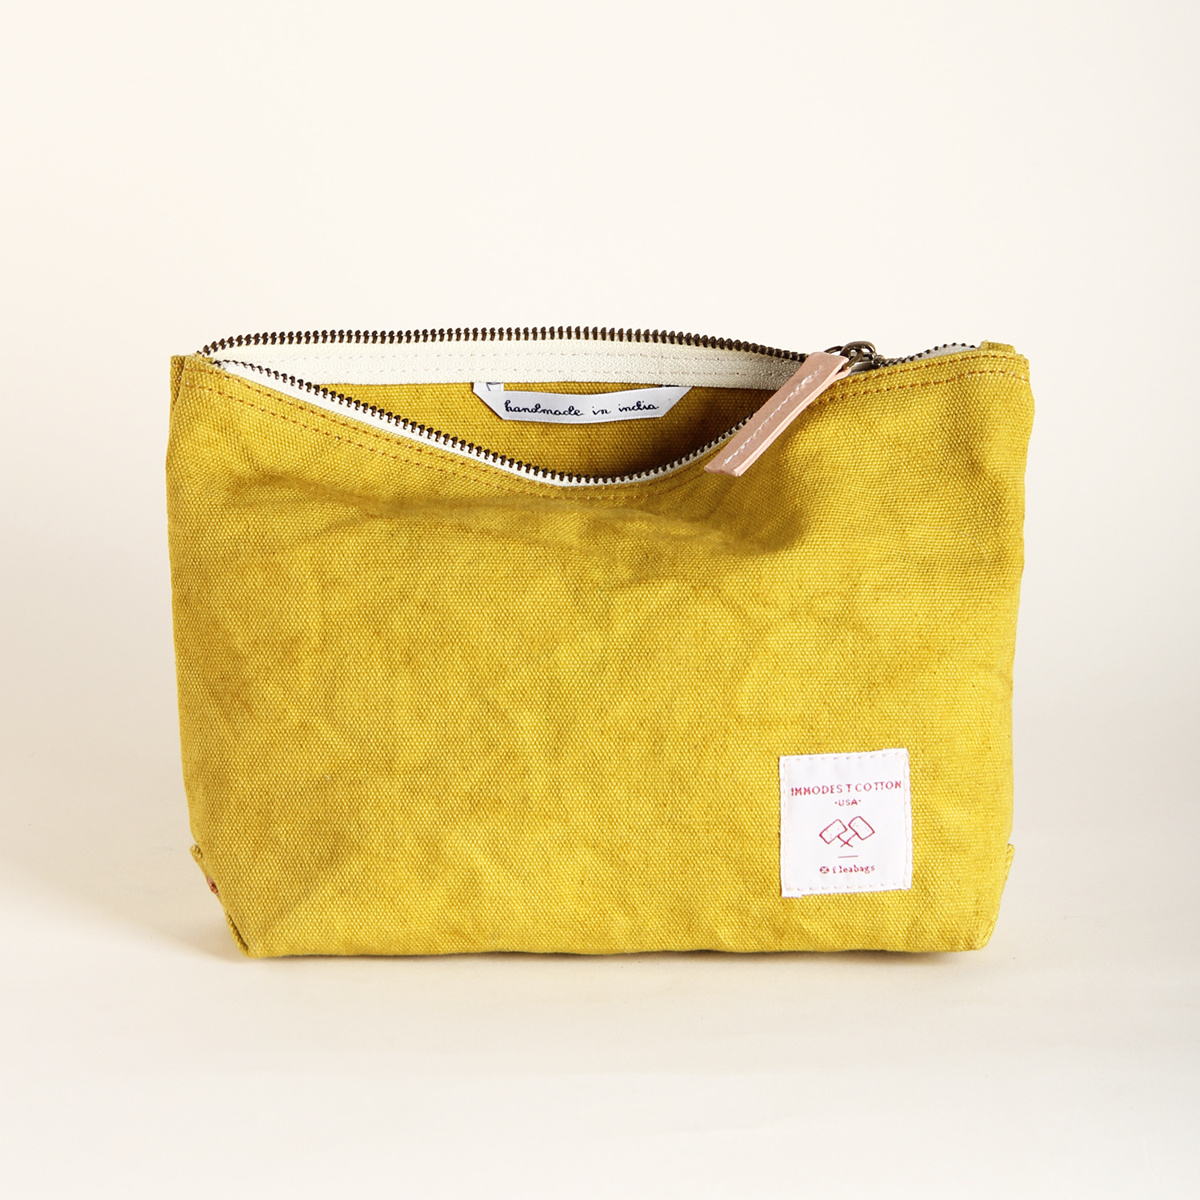 IMMODEST COTTON x Fleabags Chartreuse Mini Sardine Pouch